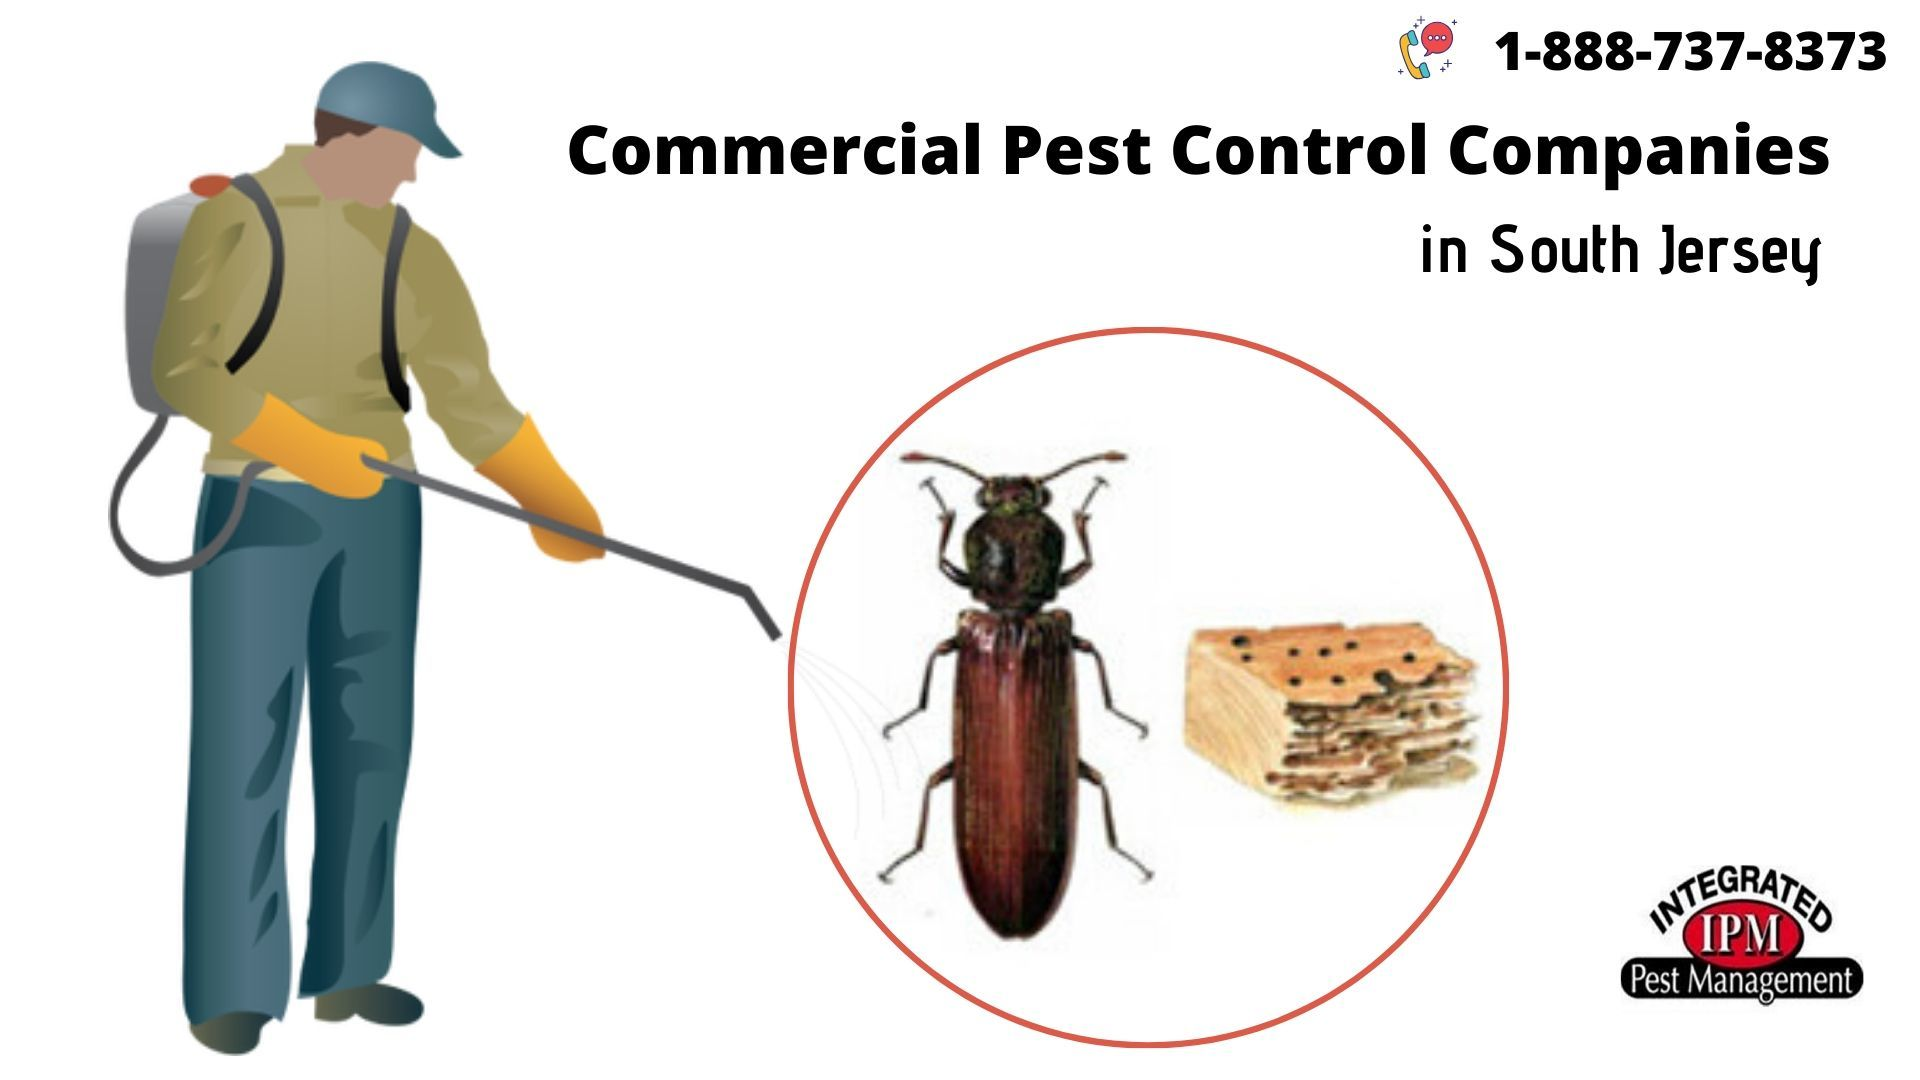 Commercial Pest Control Companies in South Jersey - JustPaste.it